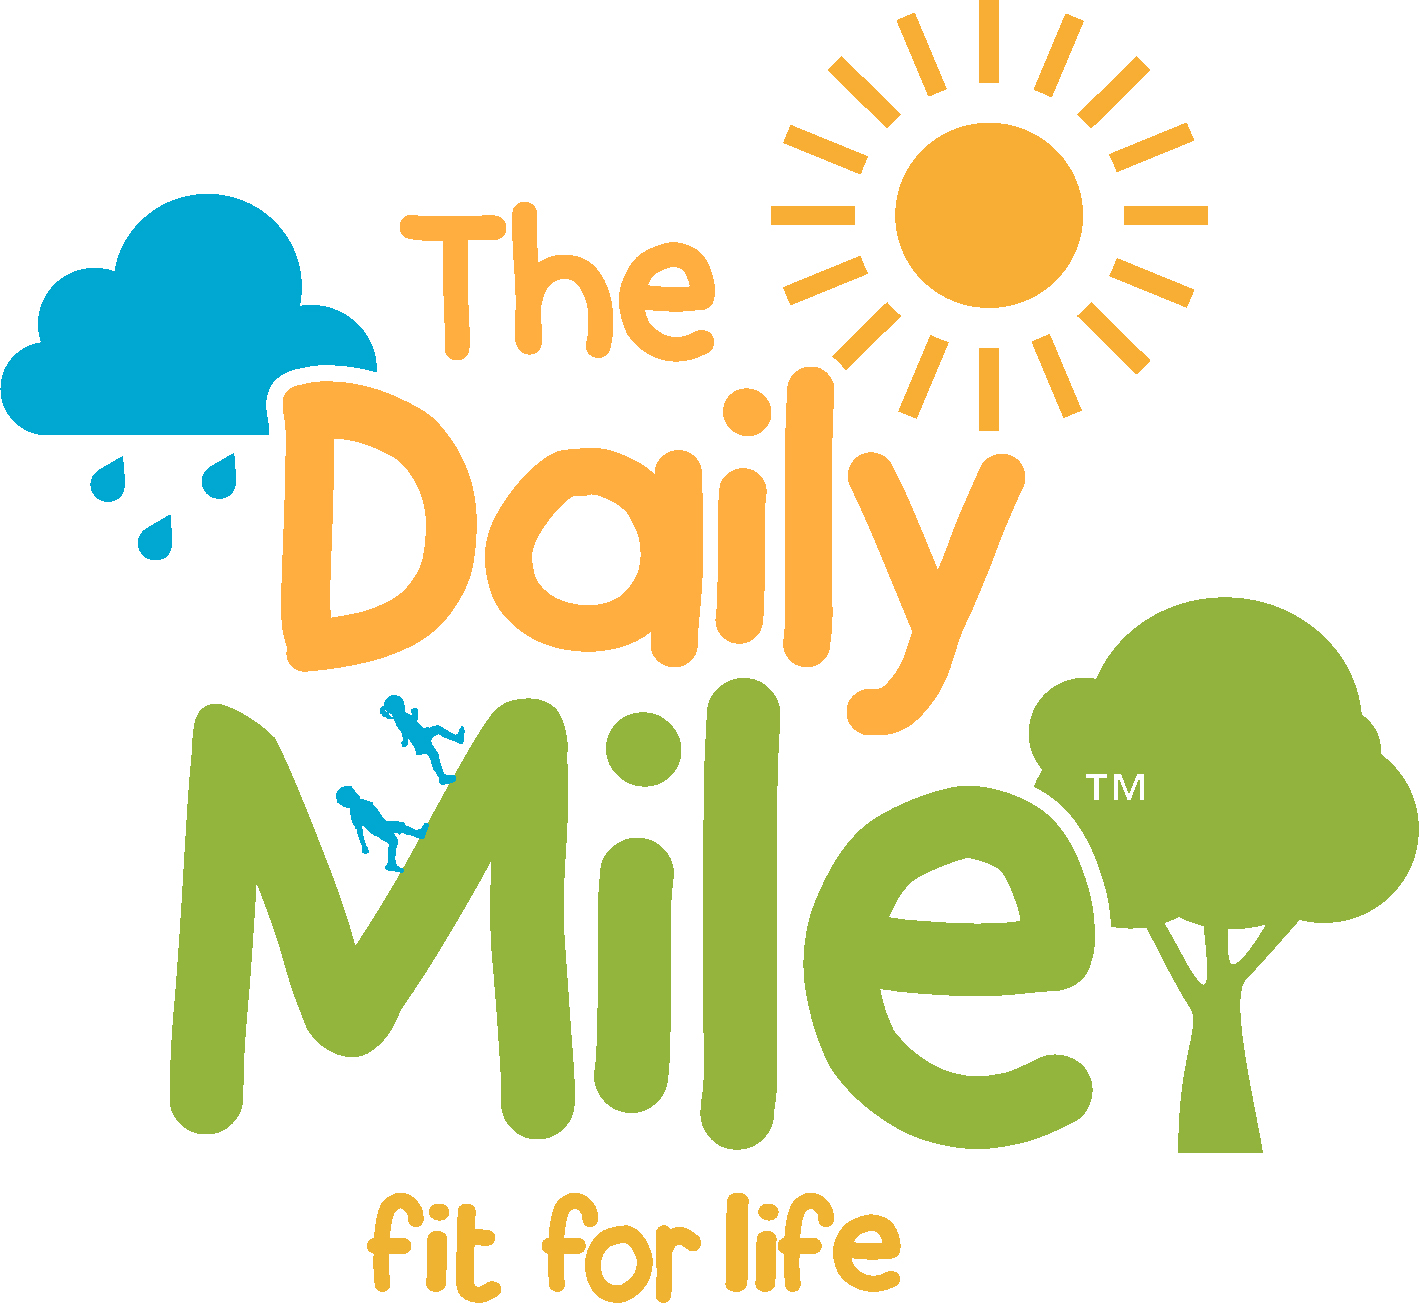 The aim of The Daily Mile is to improve the physical, social, emotional and mental health and well-being of our children – regardless of age, ability or personal circumstances. -